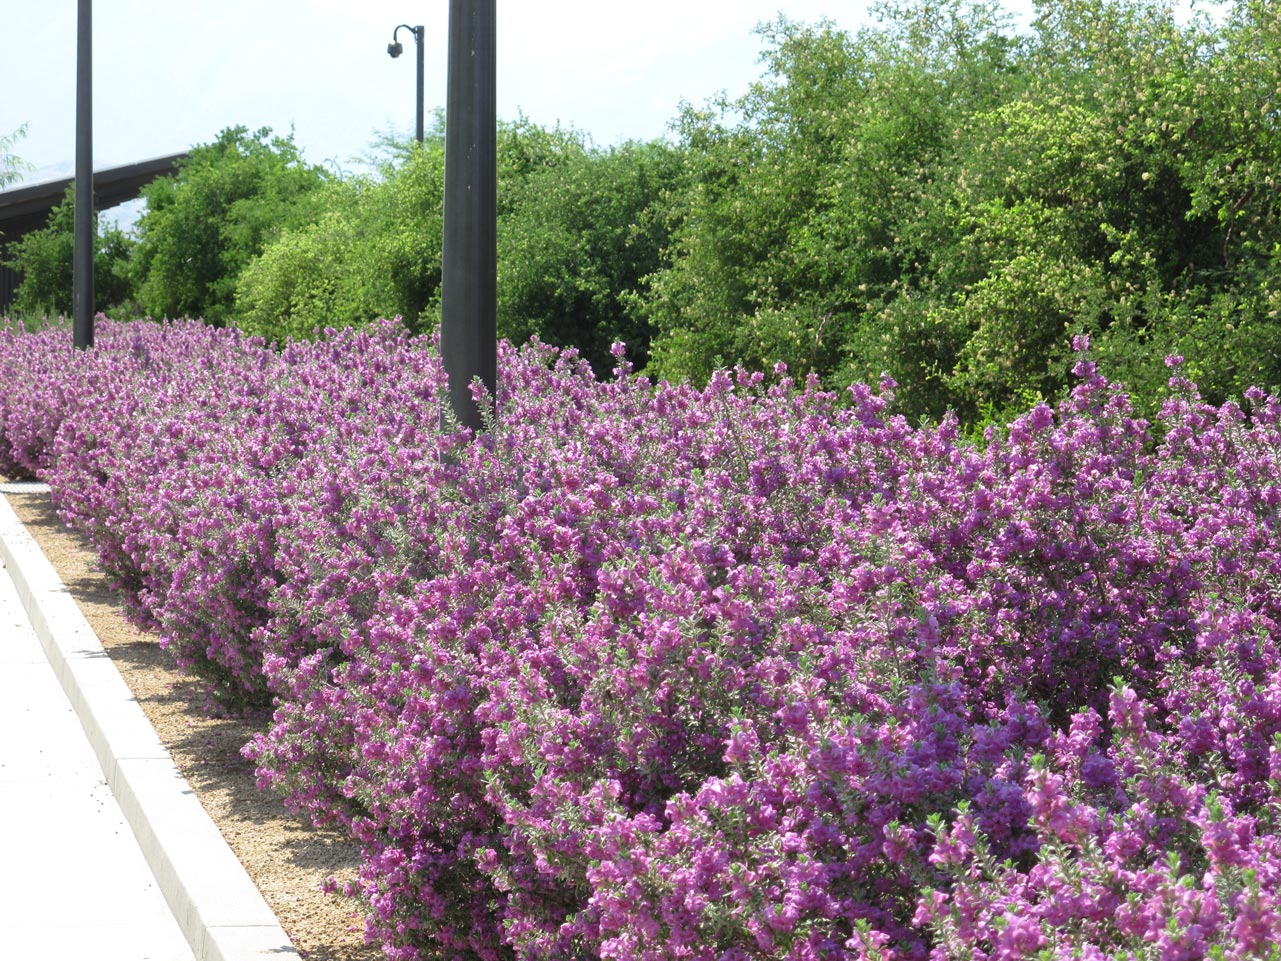 A shoulder-high row of Leucophyllum full of purple blooms along the Sunnylands Center and Gardens' parking lot.